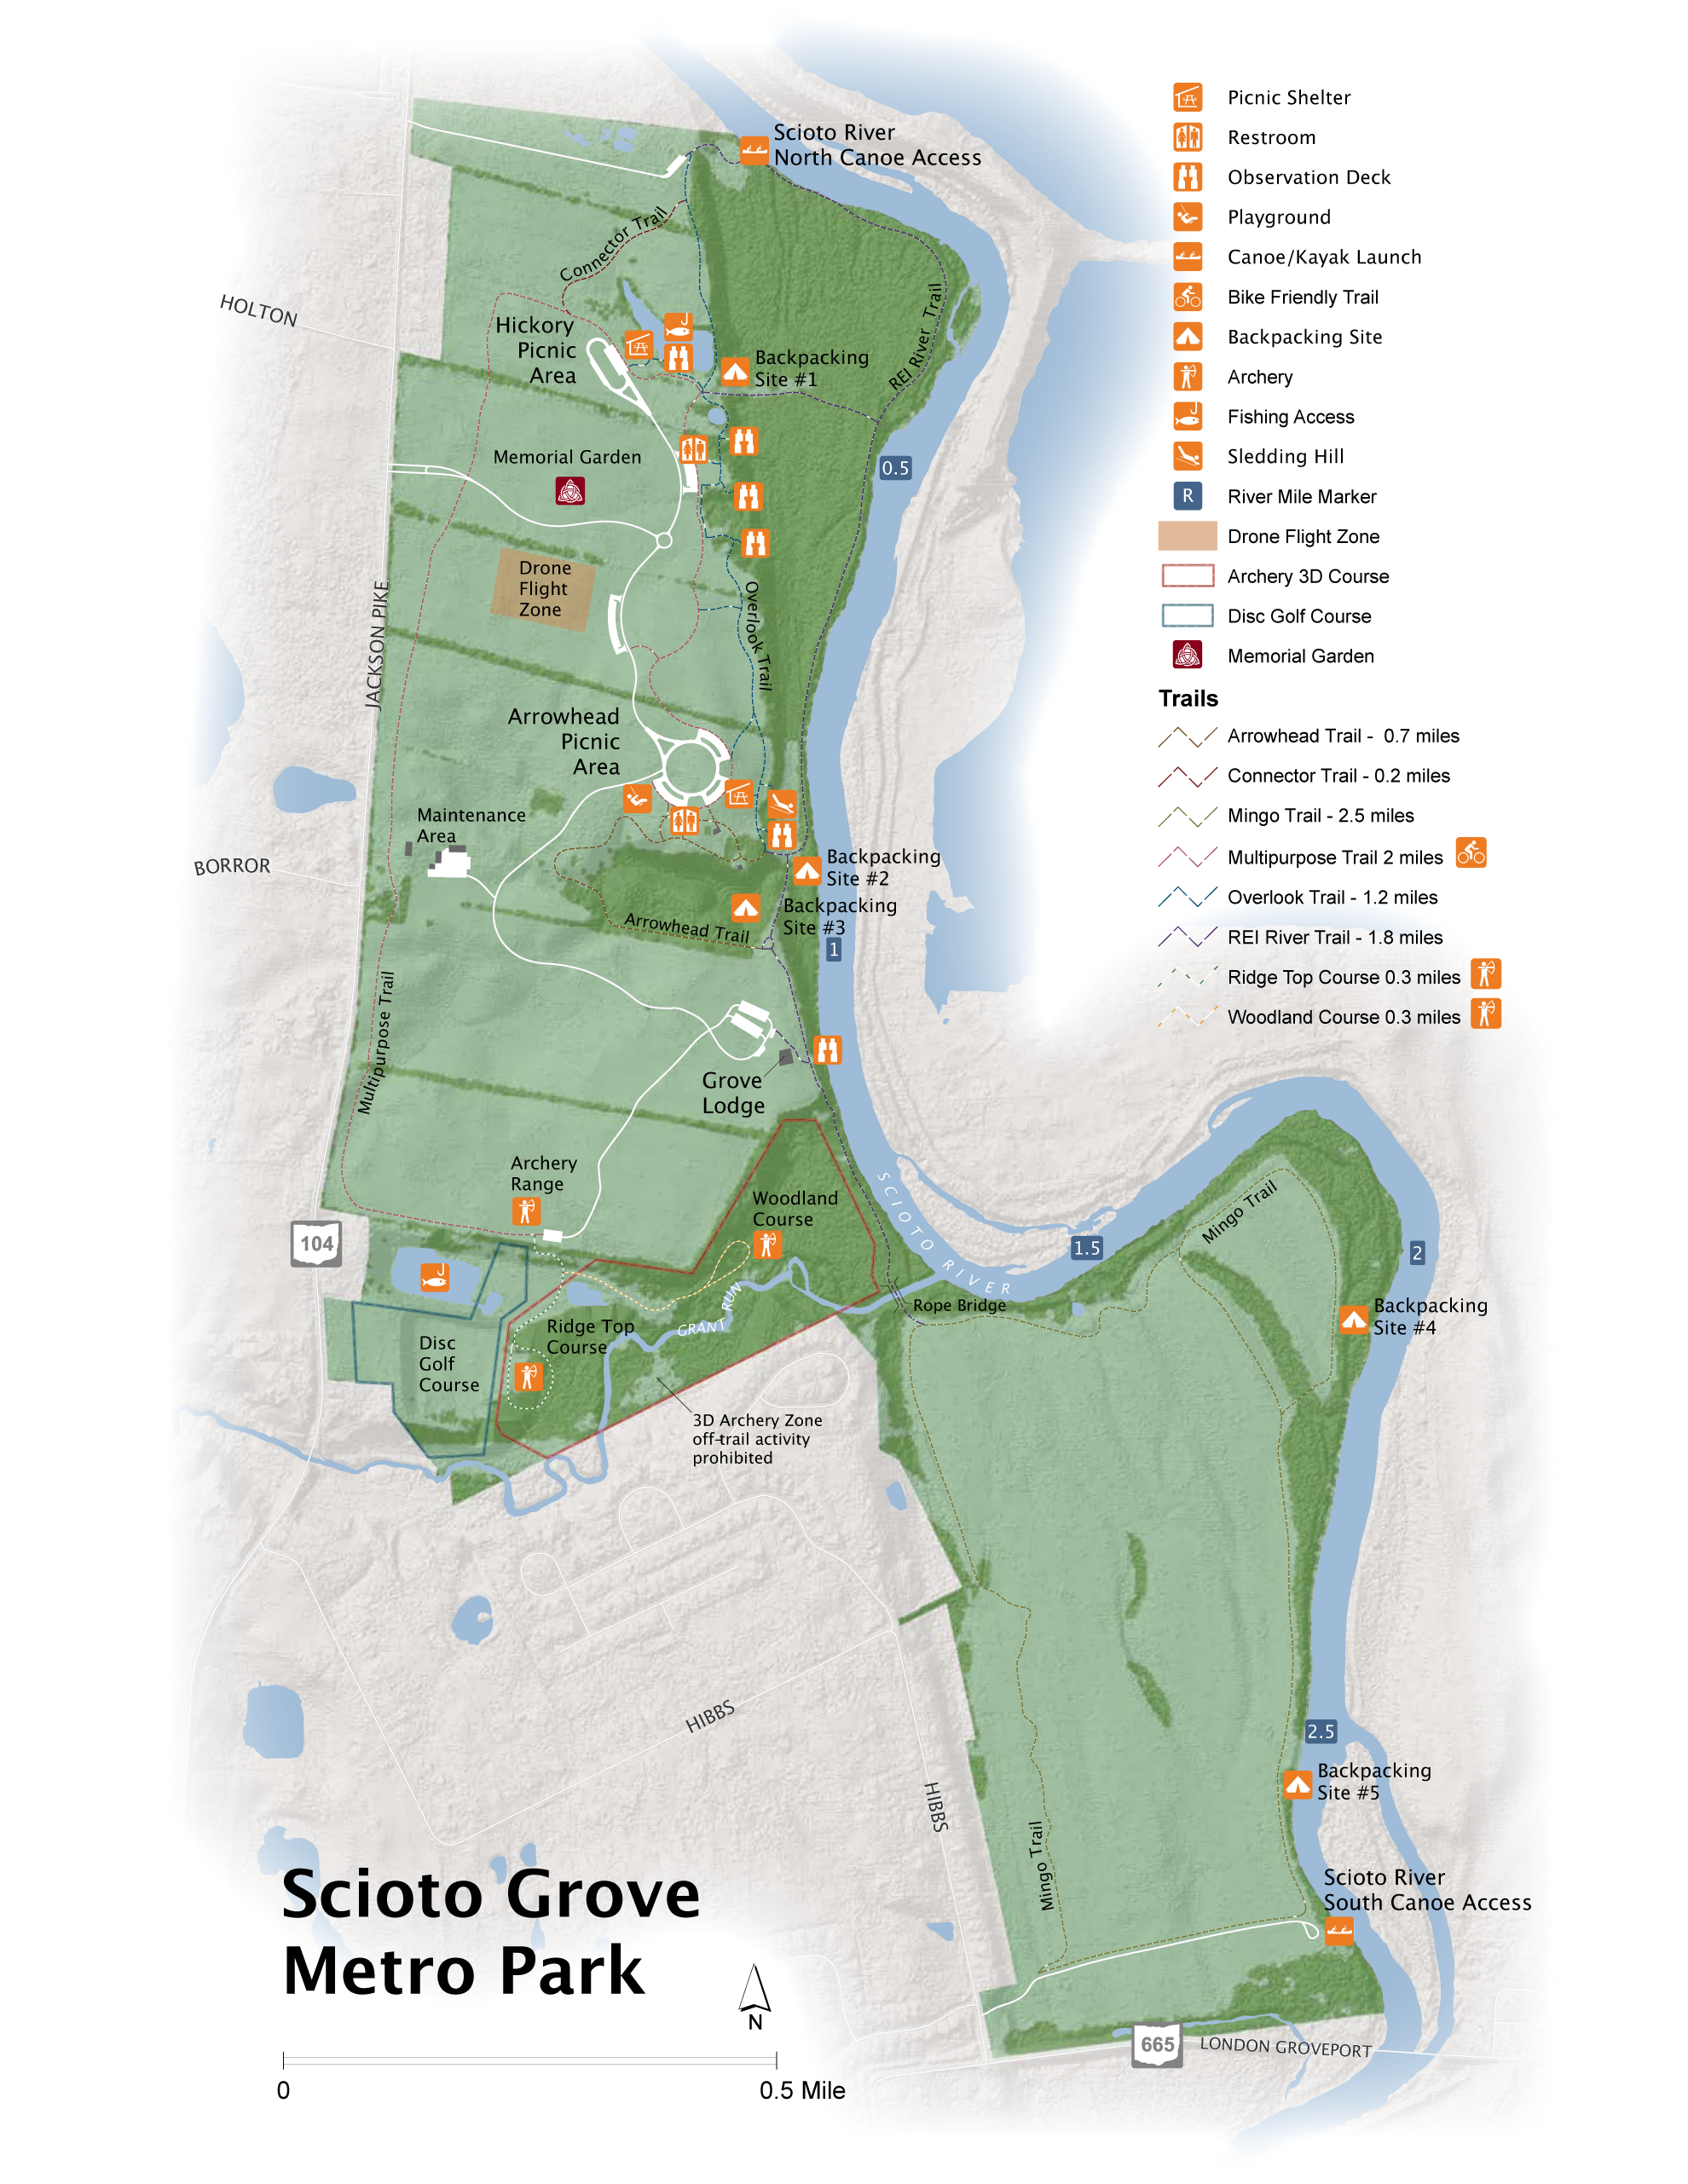 Scioto Grove Park Map - Metro Parks - Central Ohio Park System on ridge ny map, delaware park map, east fork lake state park map, south park map, battelle darby creek park map, ridge long island map, garden city long island map, platte river state park map, ellicott creek park map, nrg park map, wawayanda park map, green lane park map, allegany state park trail map, washington nationals park map, norwood park map, garden of the gods park map, ohio camping map, ohio state parks campgrounds map, knox farm state park map, globe life park map,